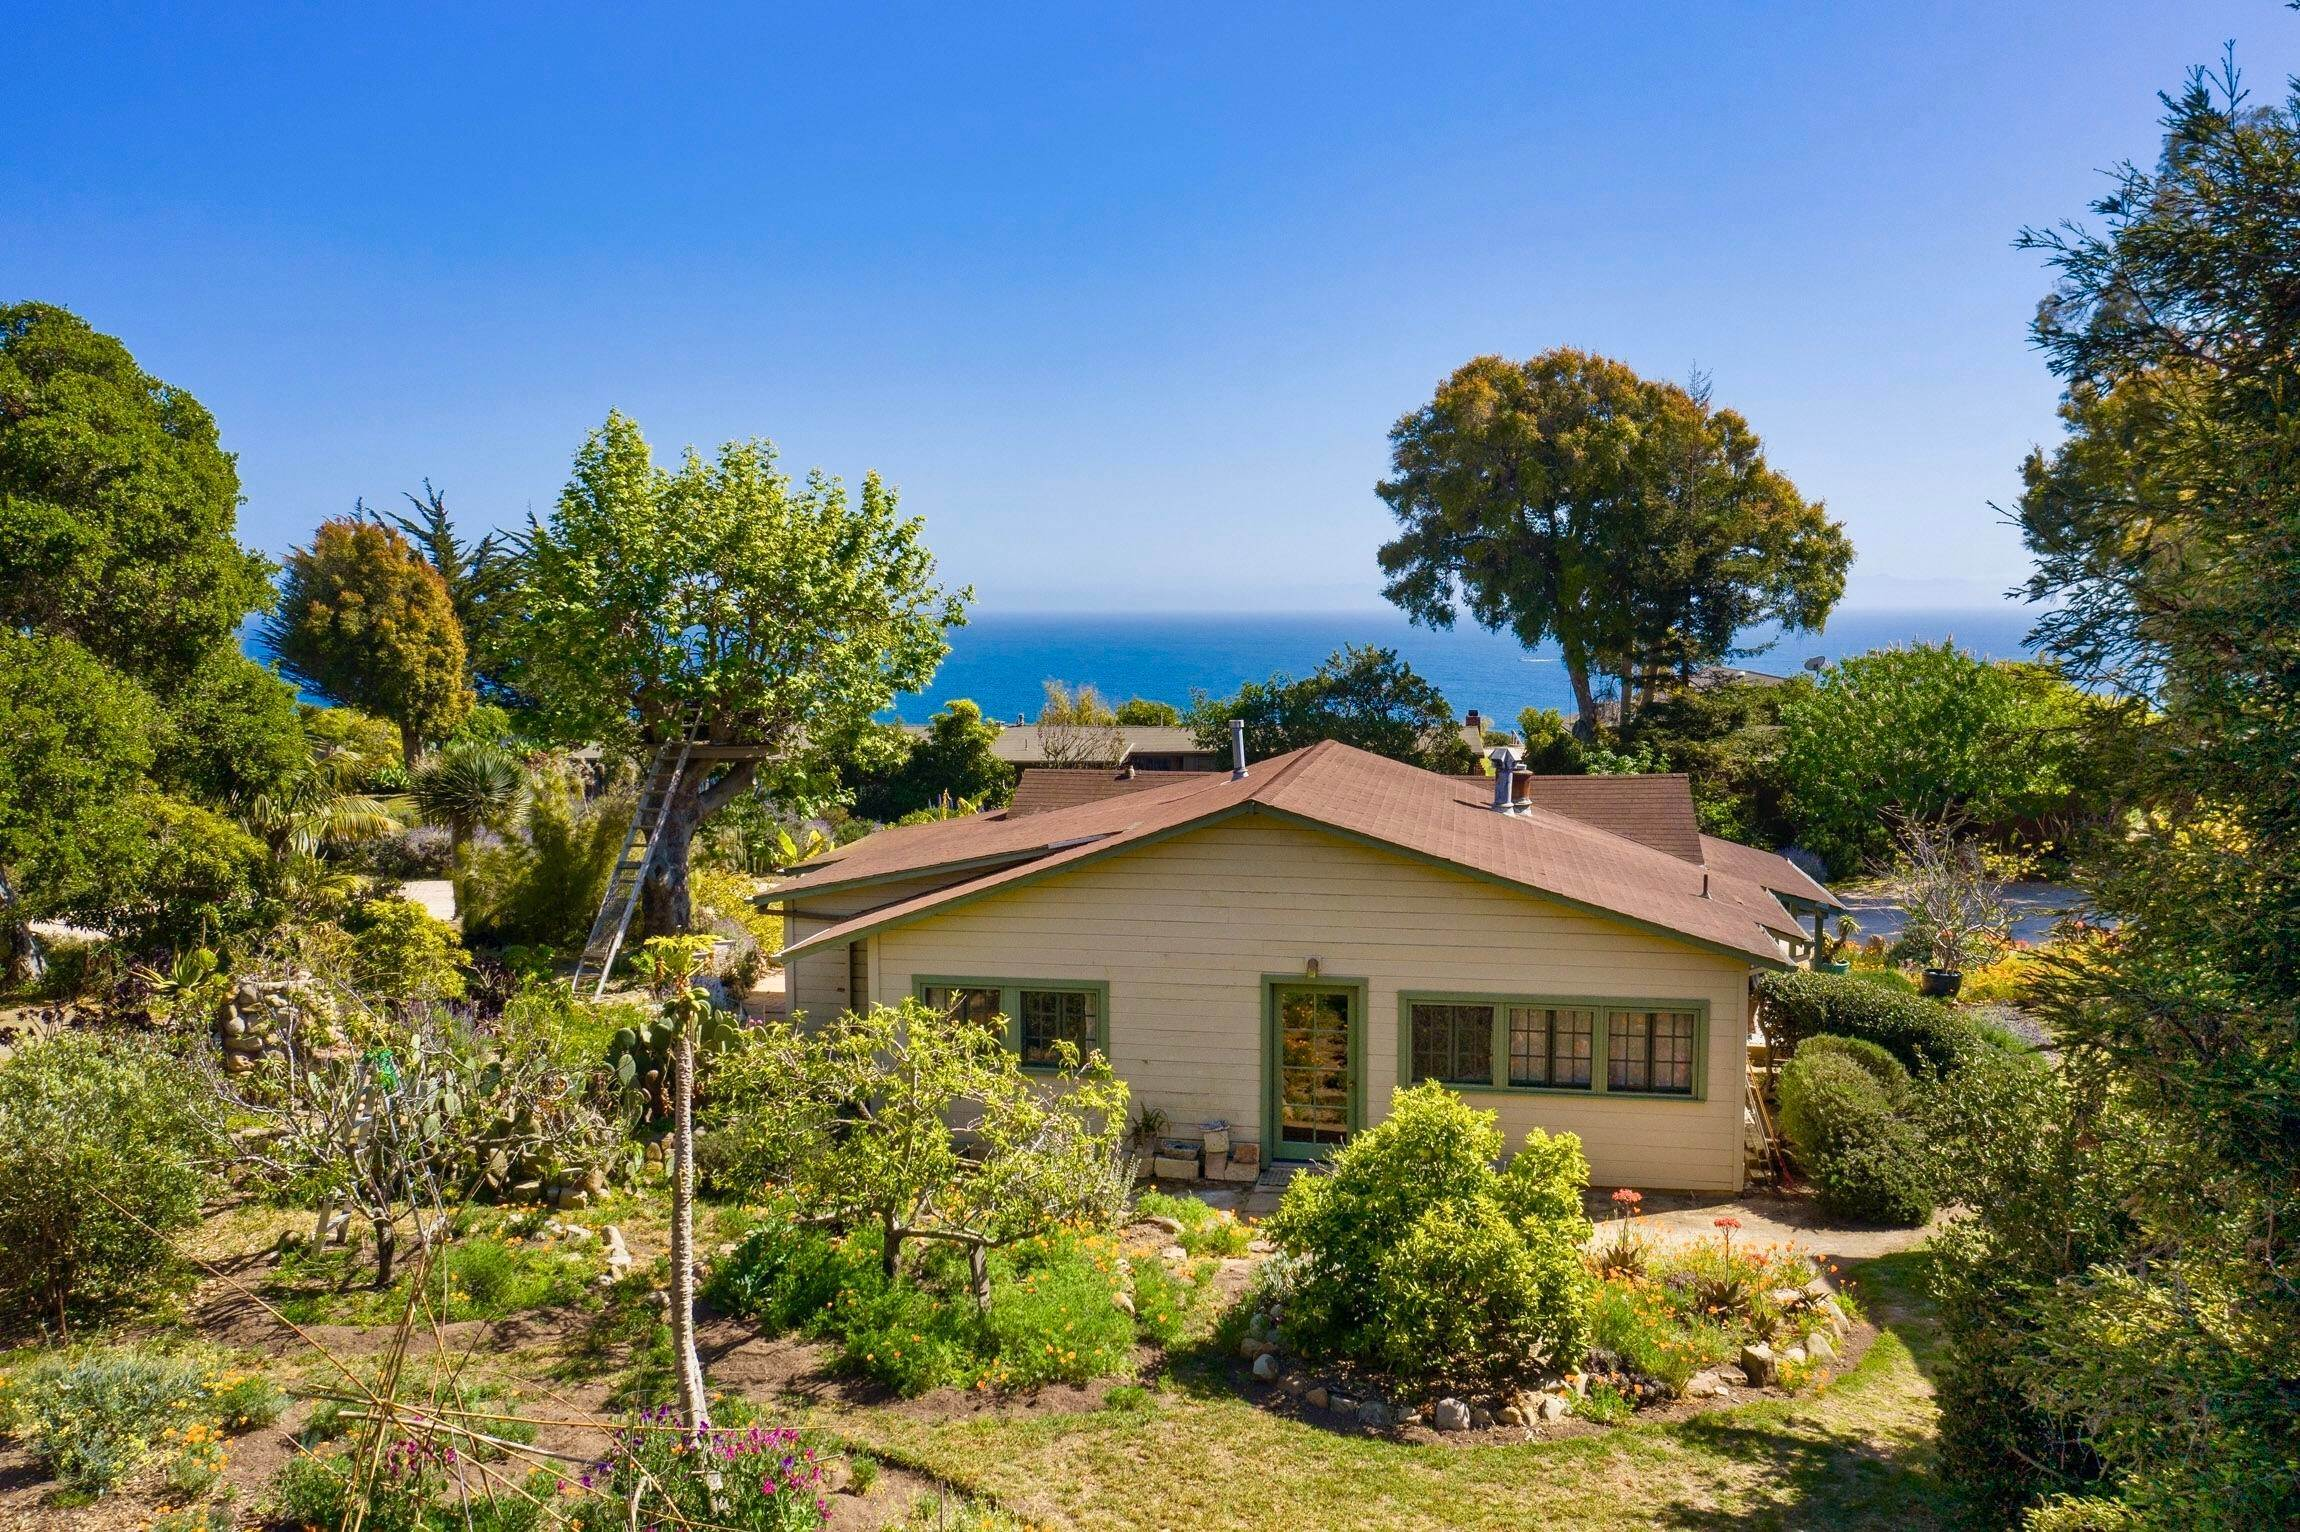 6. Estate for Sale at 101 Mesa Lane ''Beach Compound'' Santa Barbara, California 93109 United States